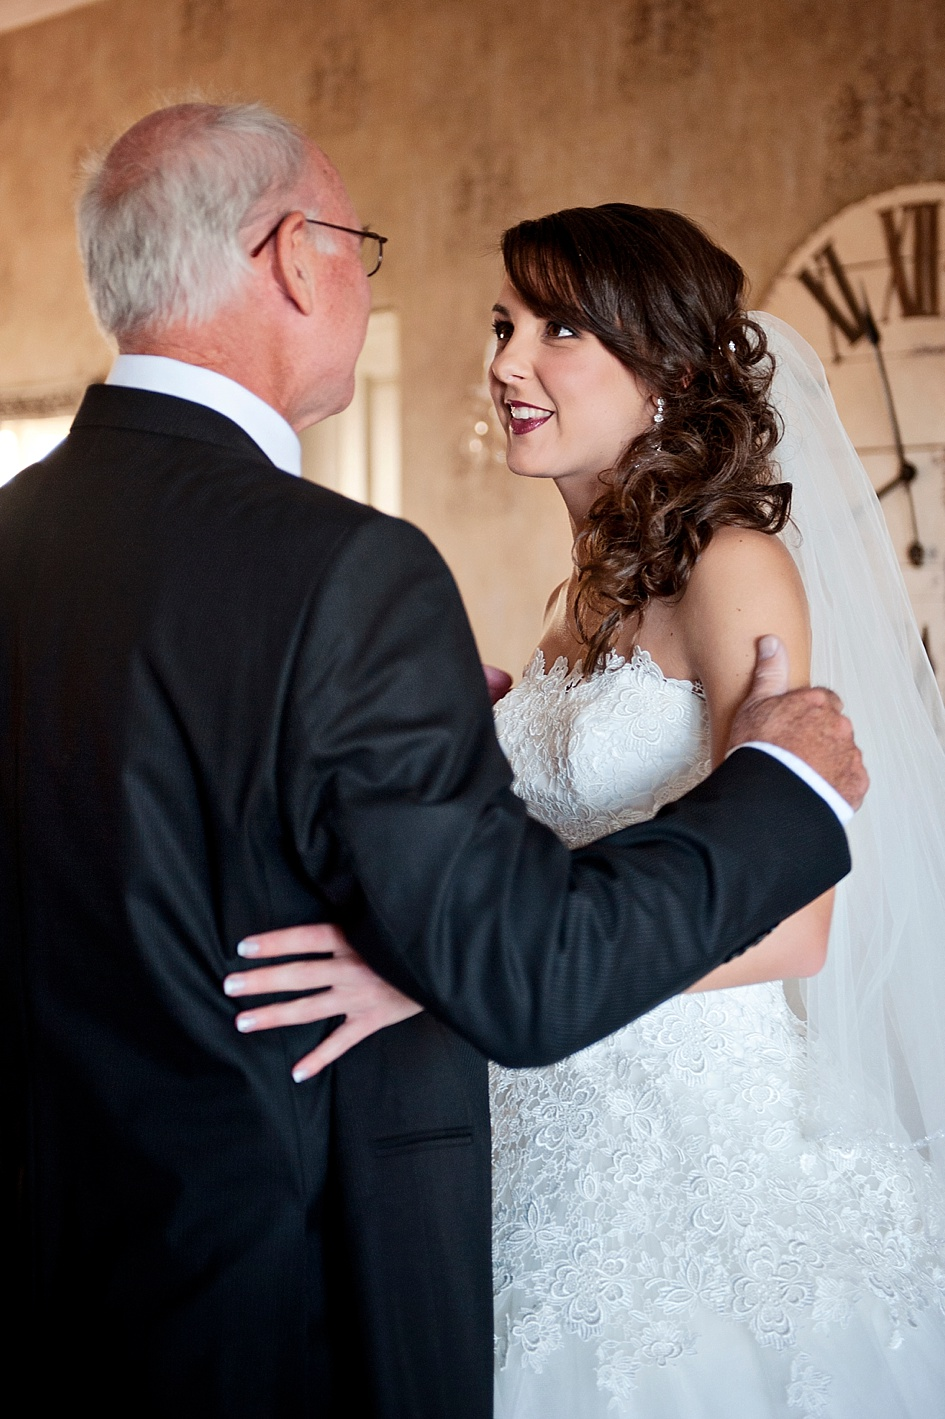 father-daughter-pre-wedding-photography.jpg